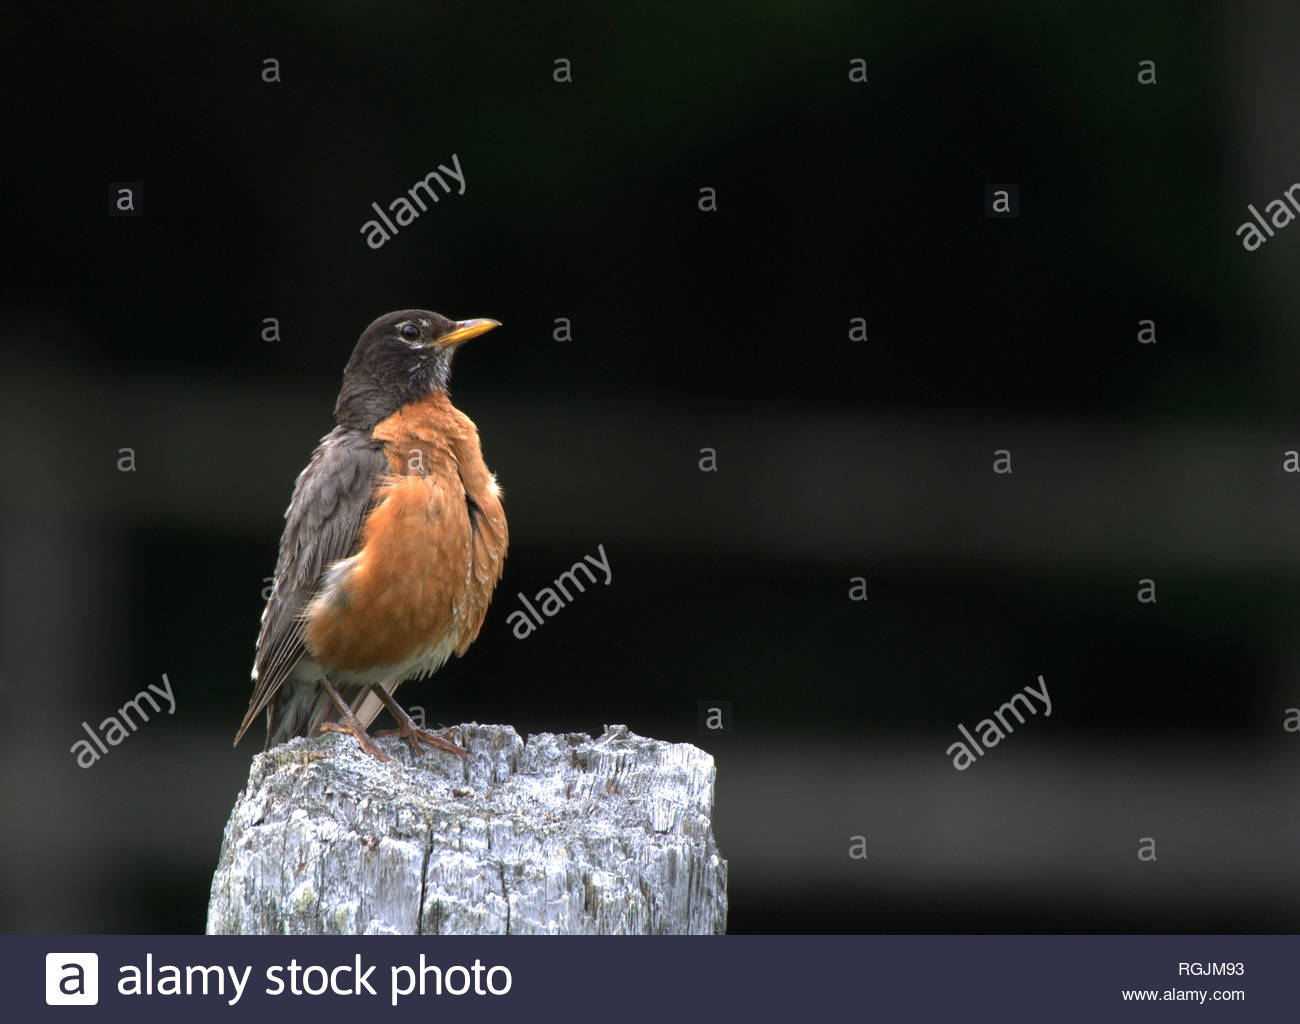 Robin on fence post - Stock Image